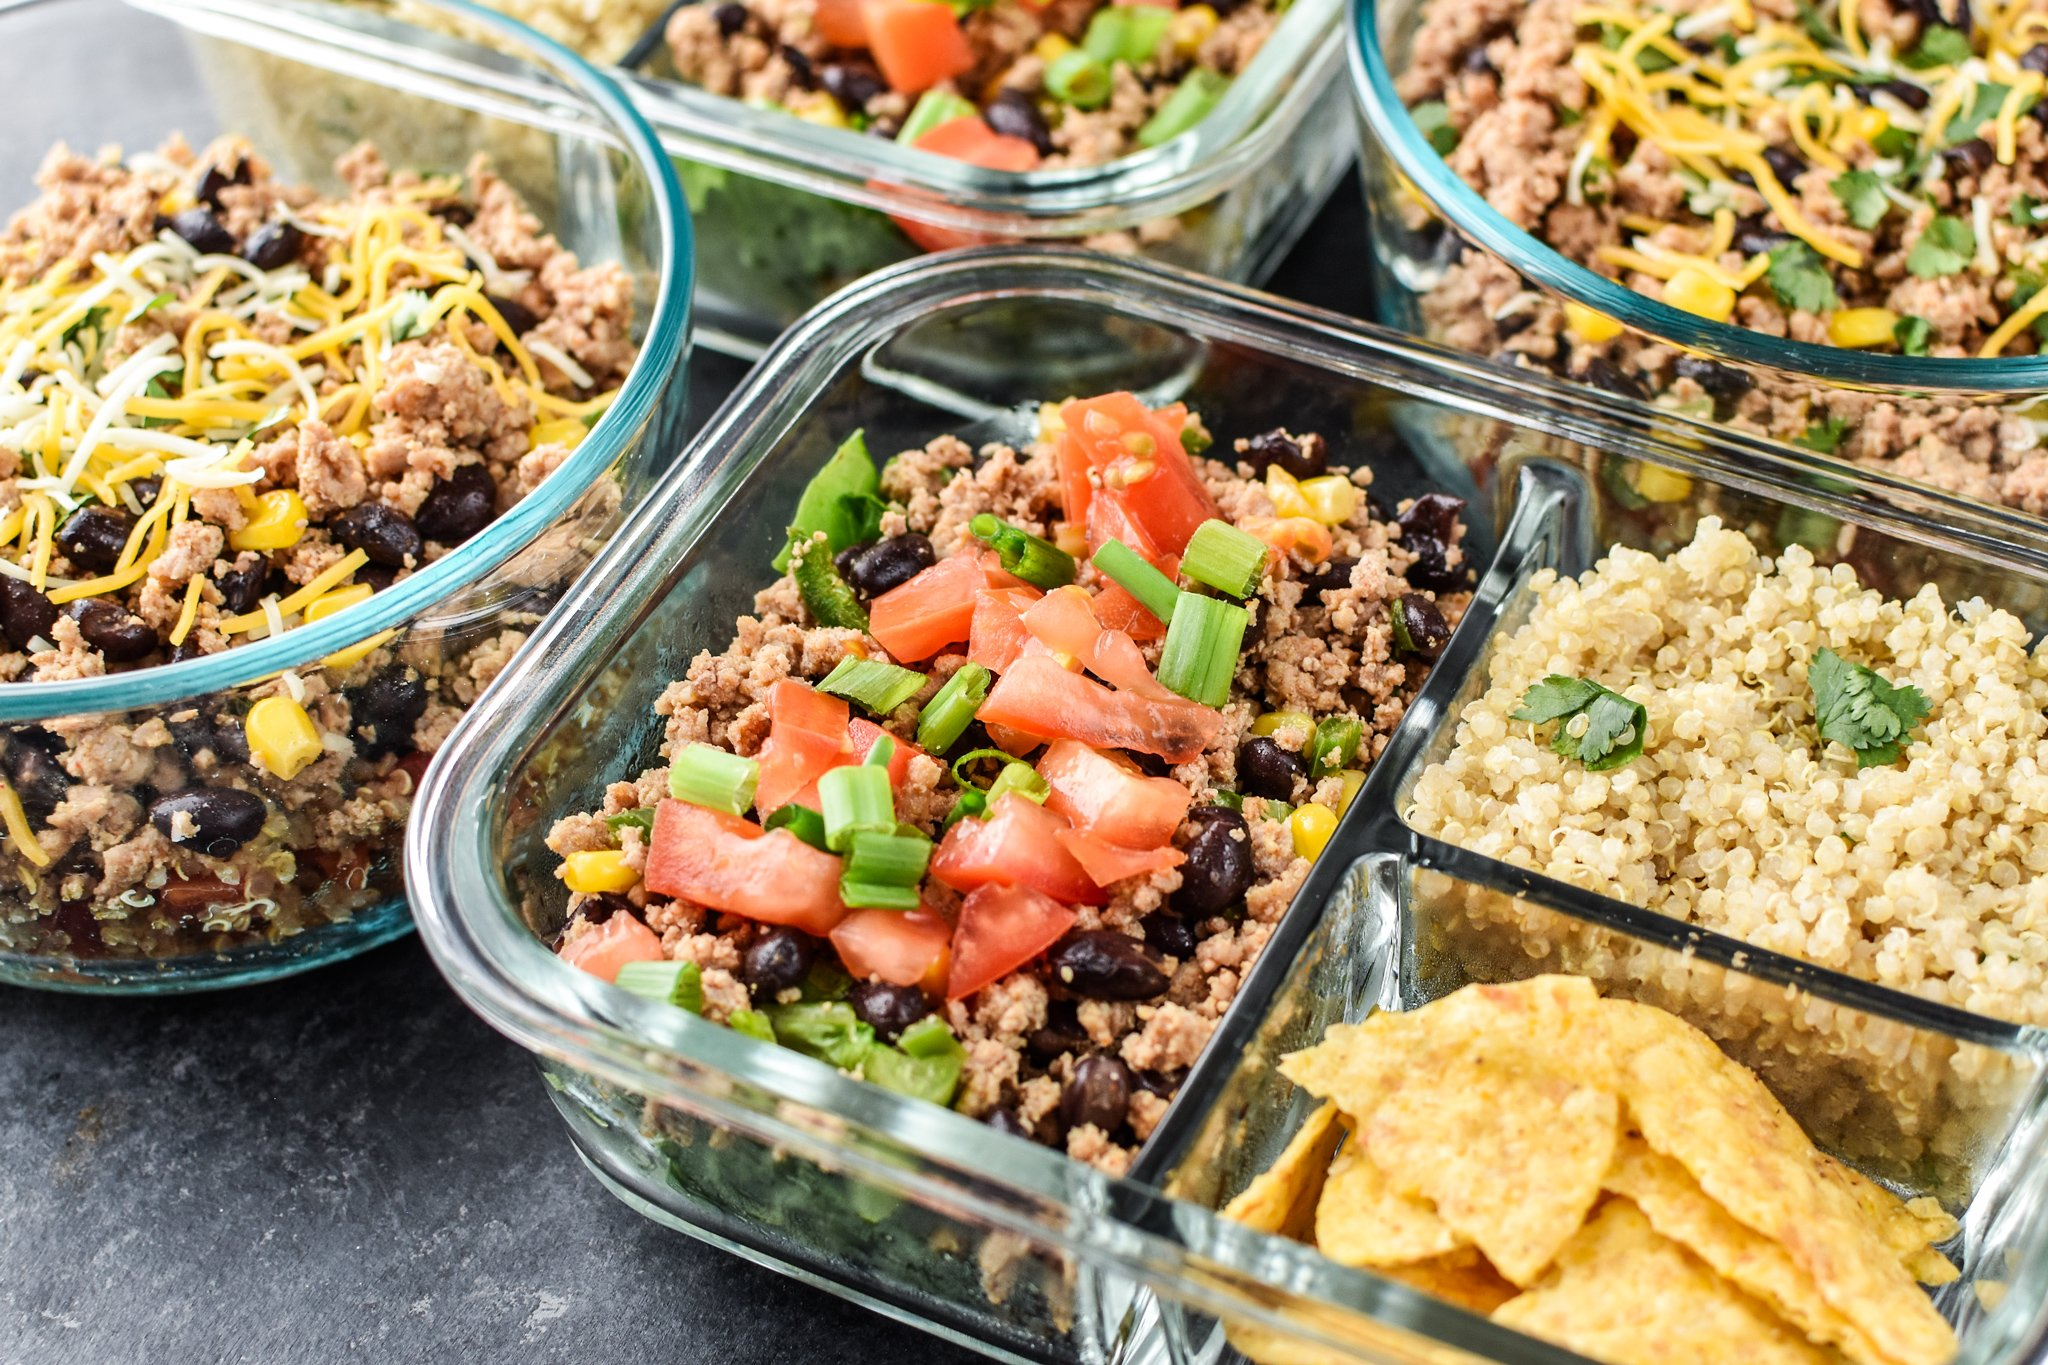 Four meal prepped lunches viewed from above for Hot & Cold Turkey Taco Meal Prep; two taco salads with quinoa and chips on the side and two taco bowls with tomato and green chili quinoa.